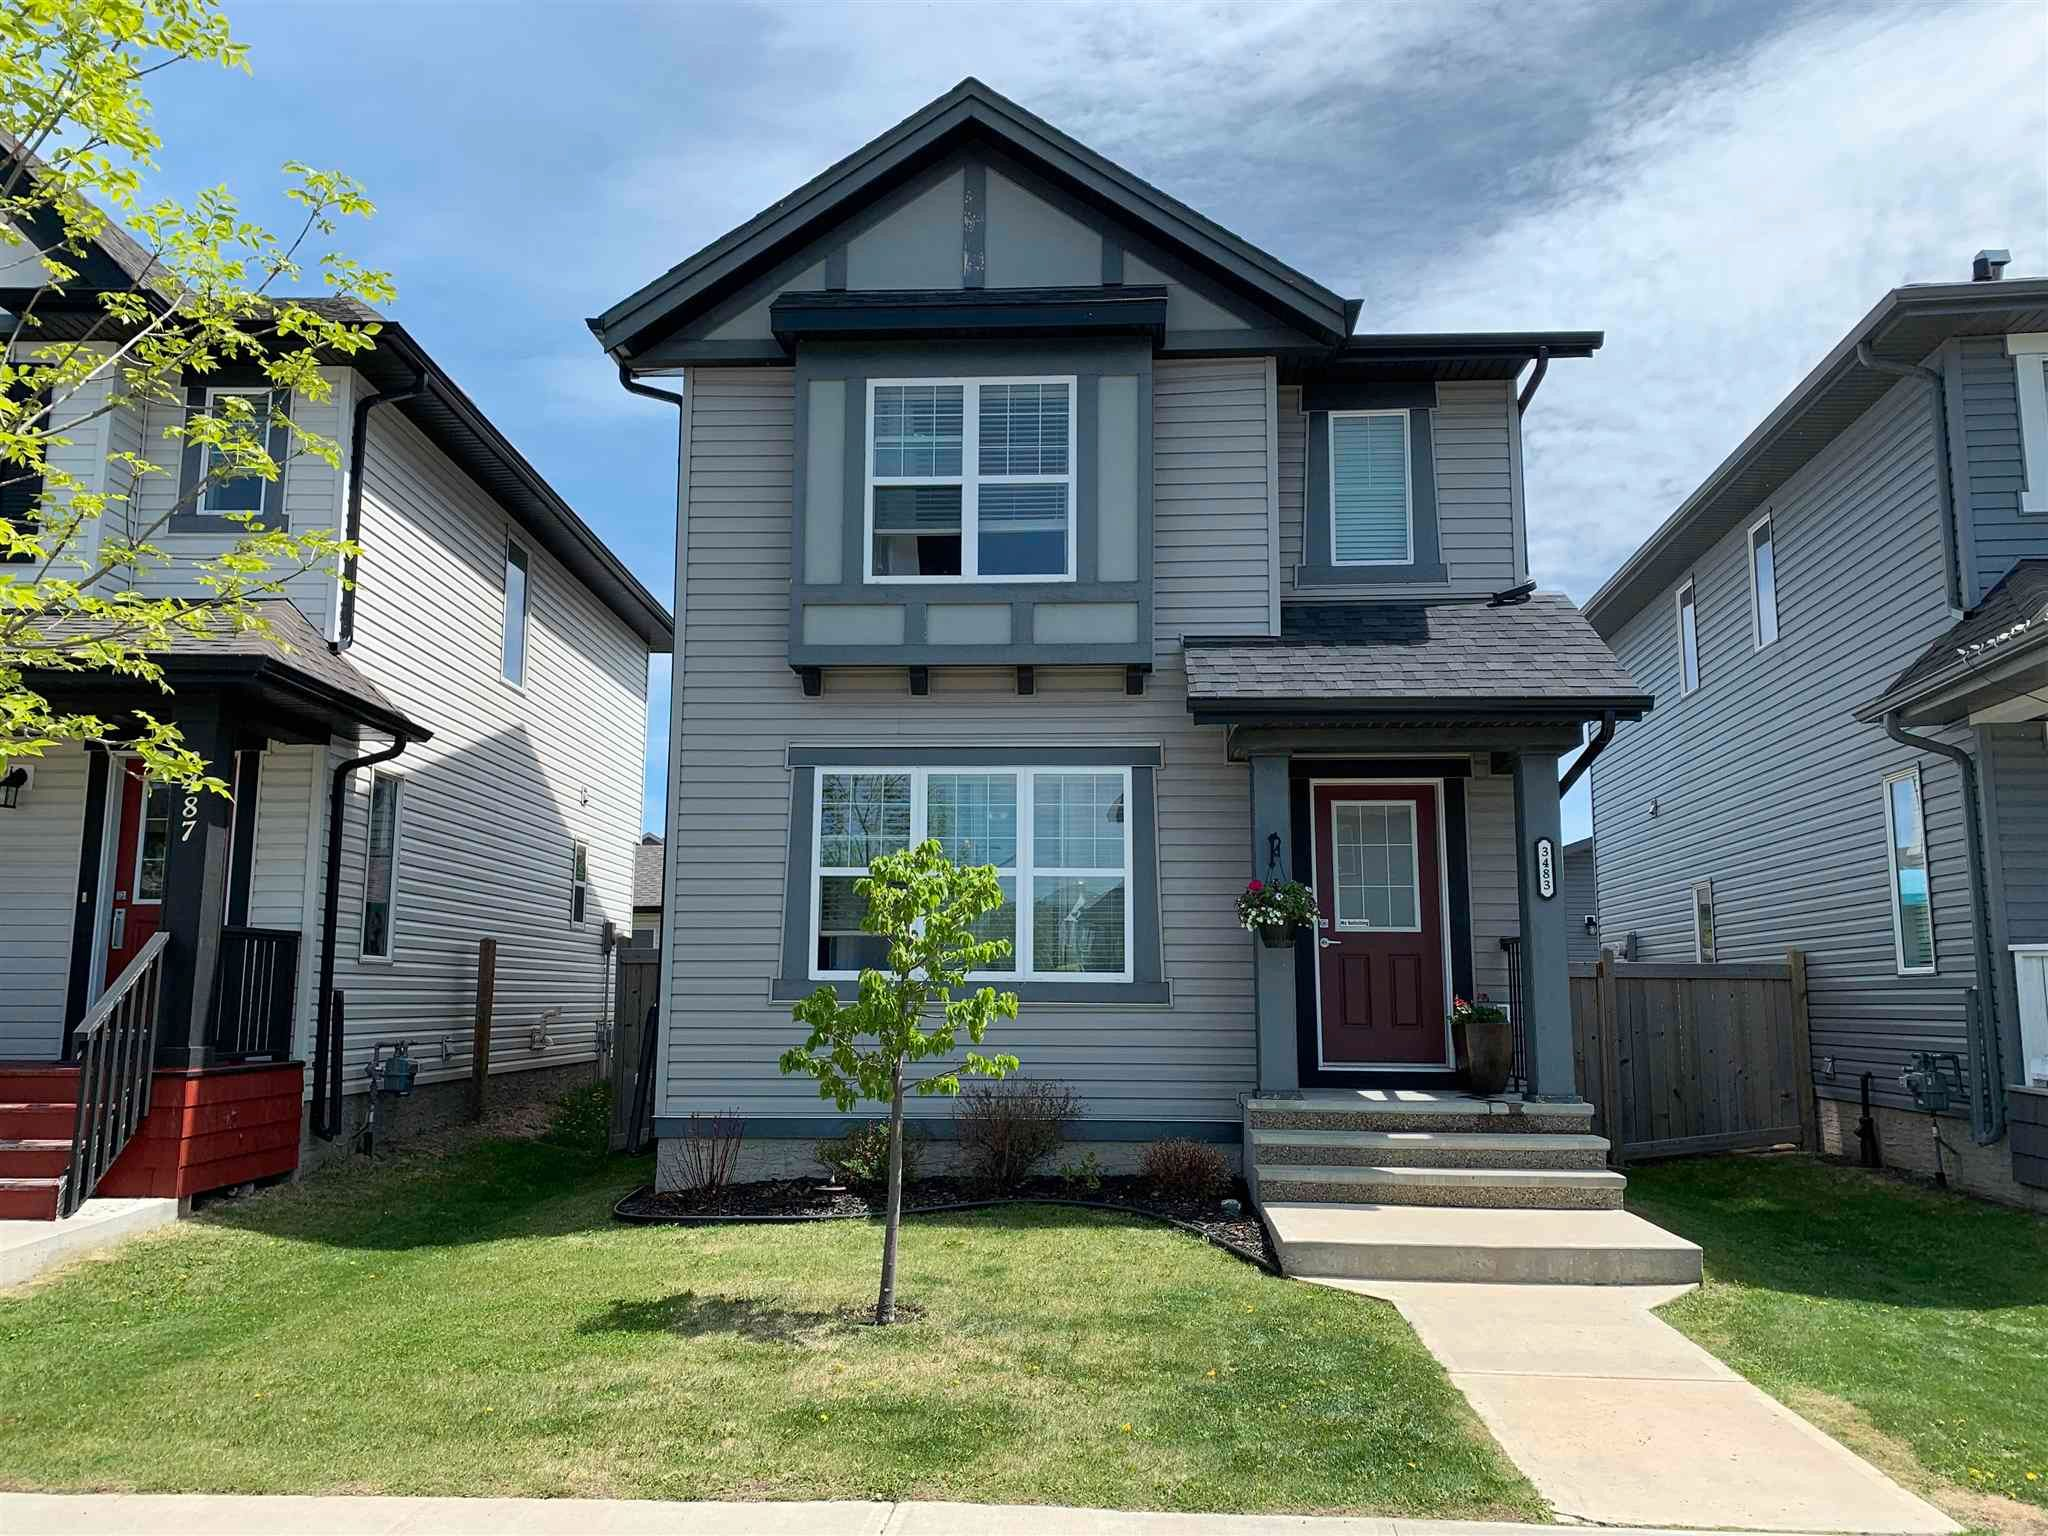 Main Photo: 3483 15A Street NW in Edmonton: Zone 30 House for sale : MLS®# E4248242